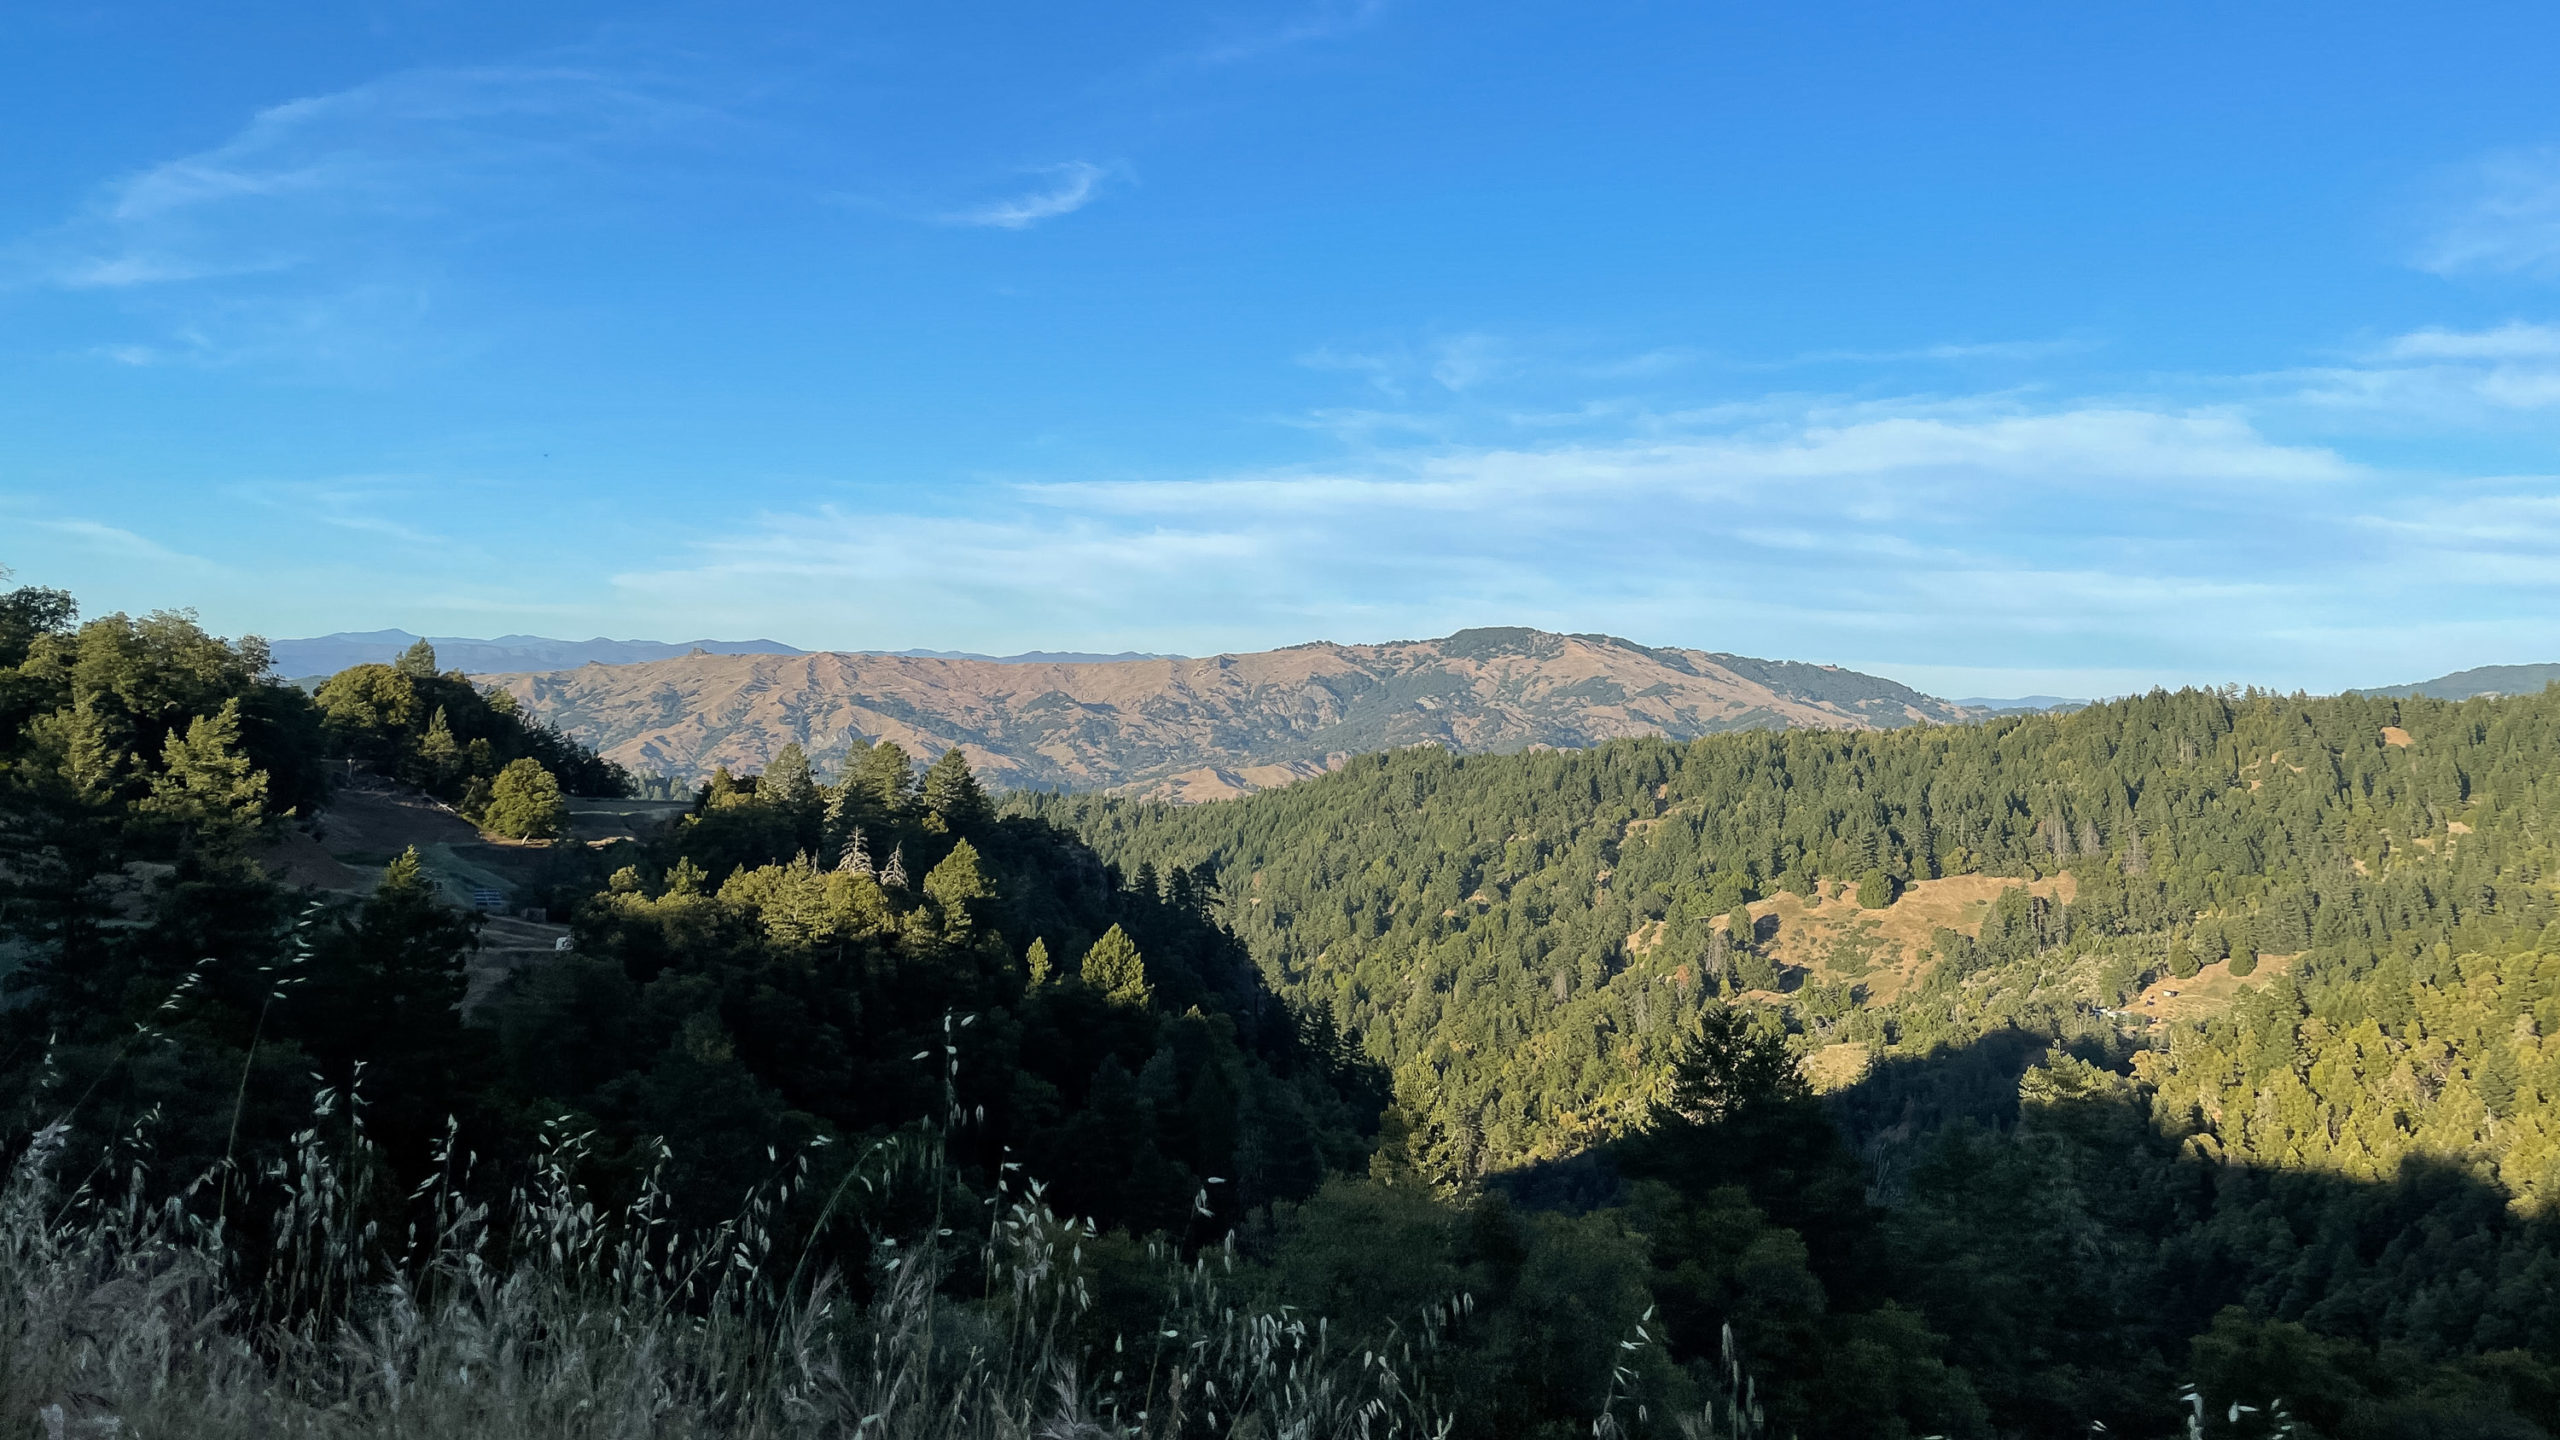 California mountains and hills covered in trees with a blue sky